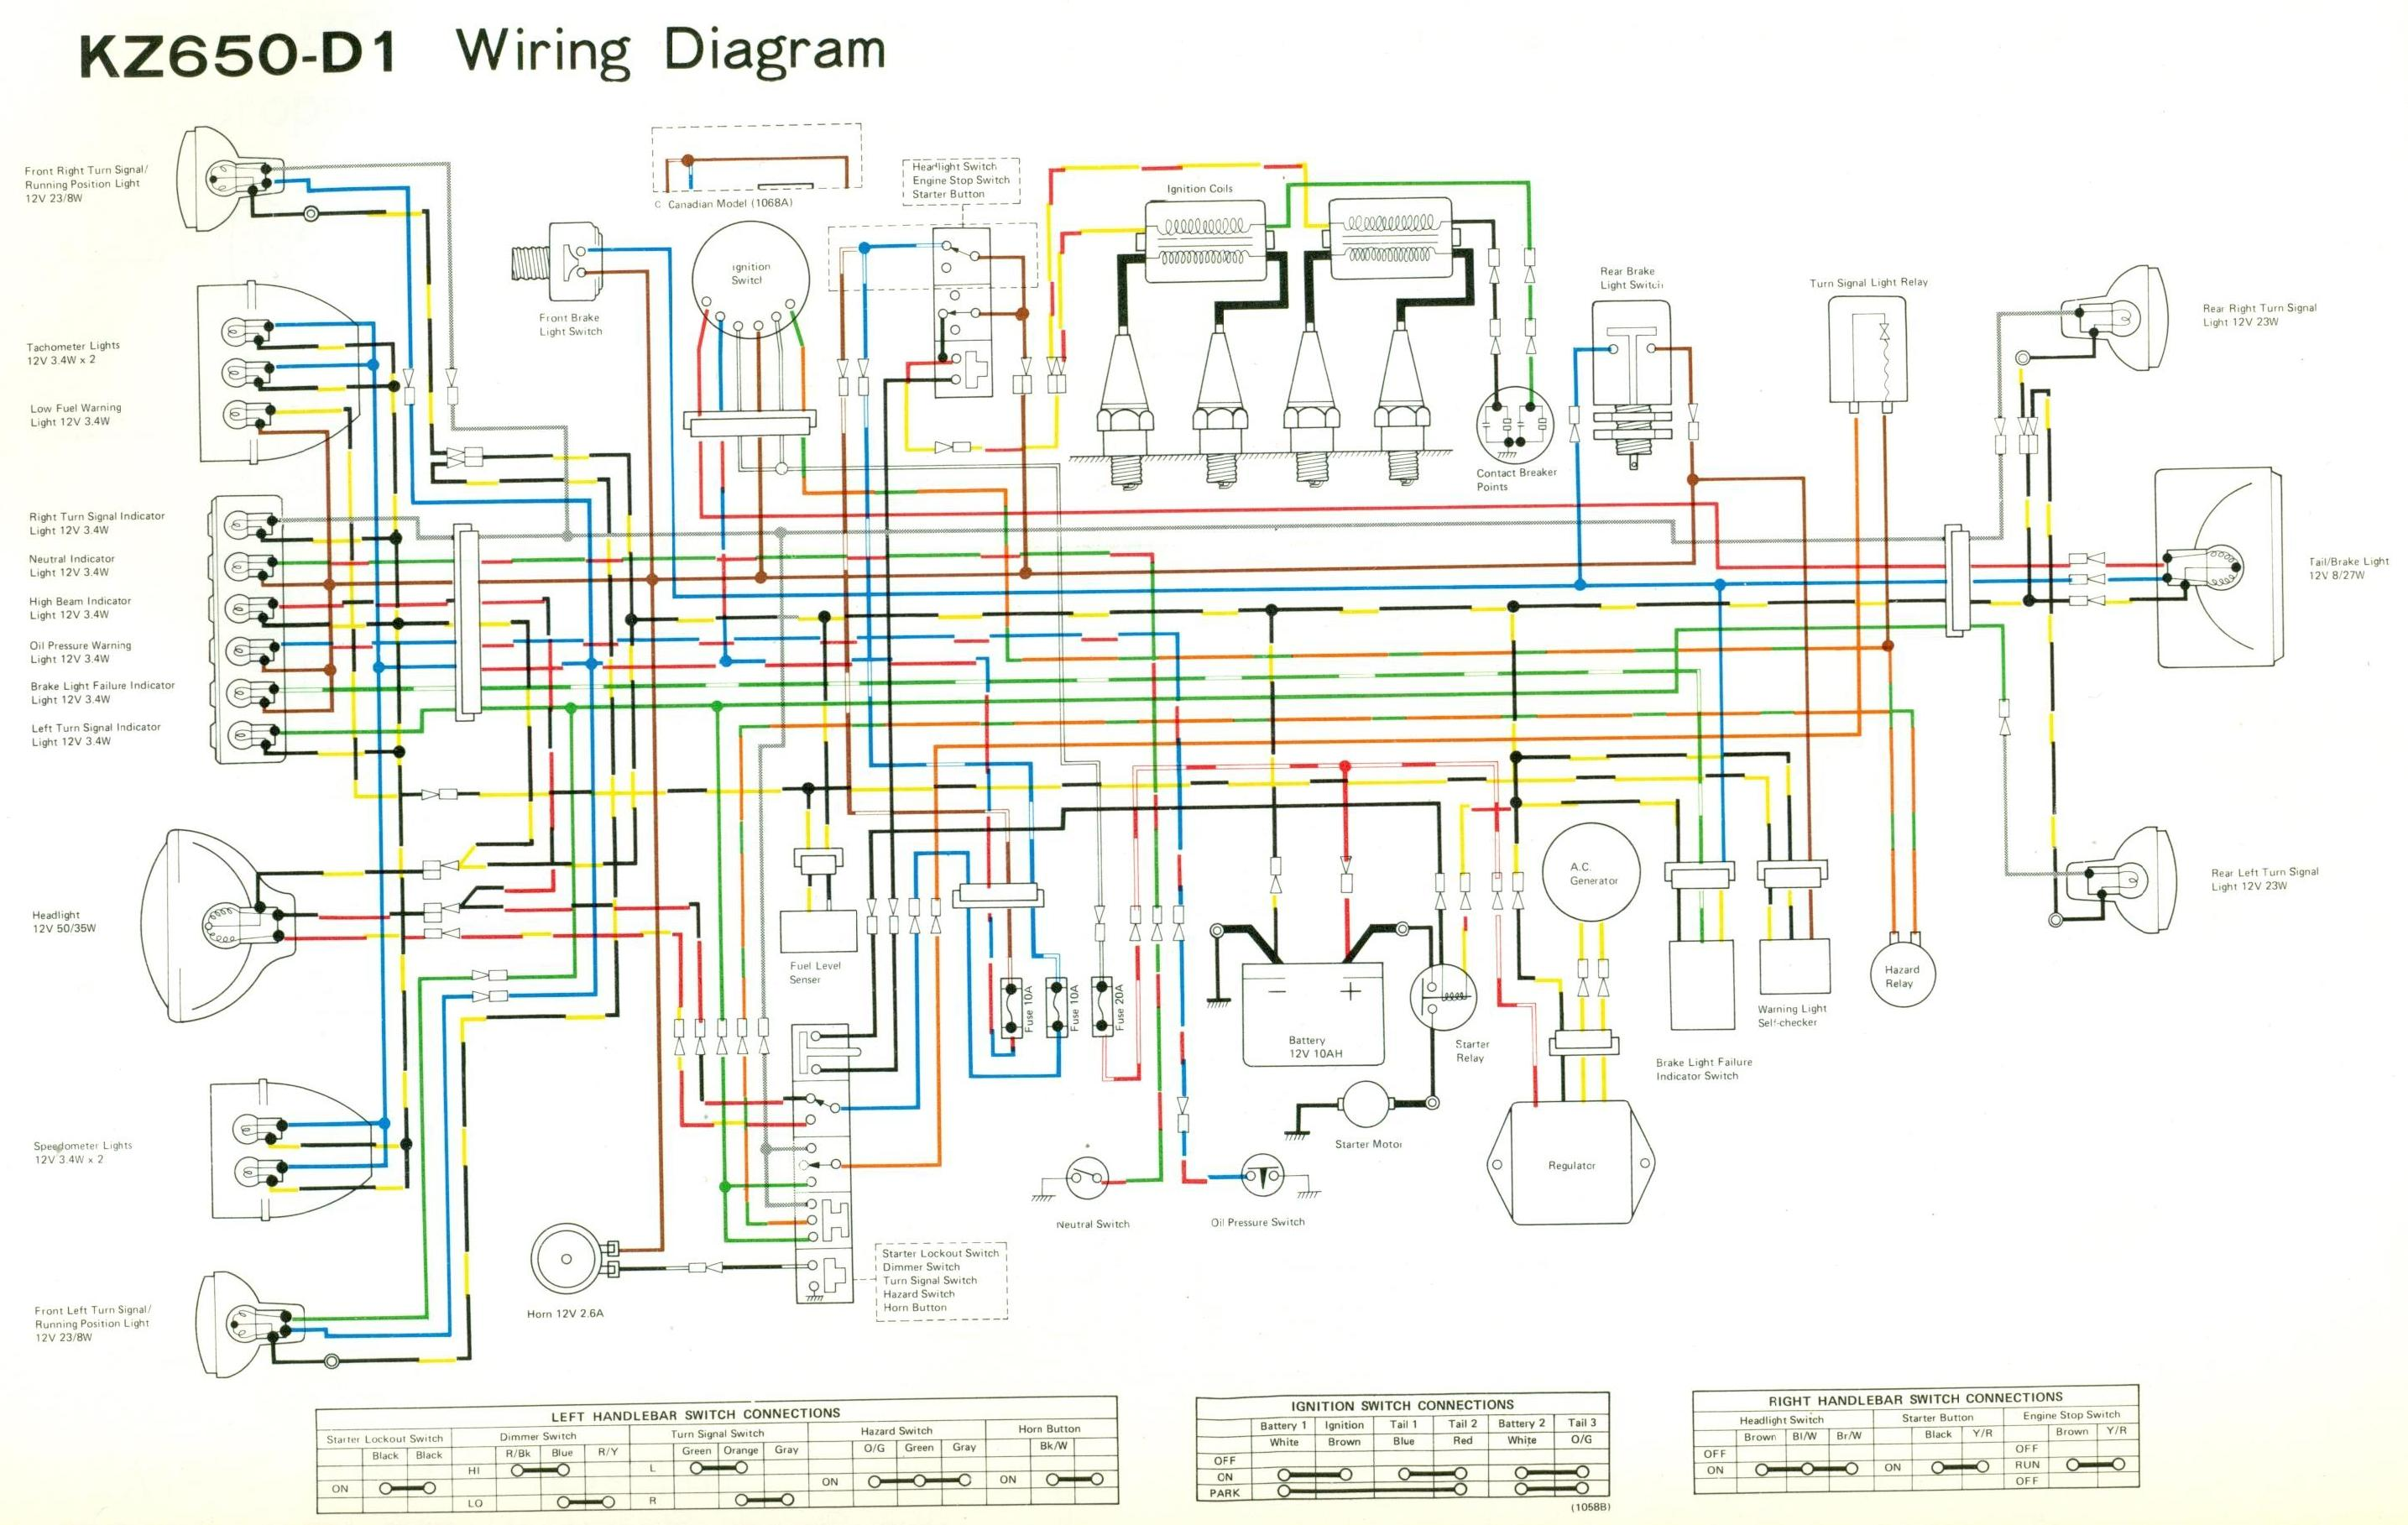 Kawasaki Ninja 900 Wiring Diagram And Schematics Diagrams Rh Oregonmotorcycleparts Com 2008